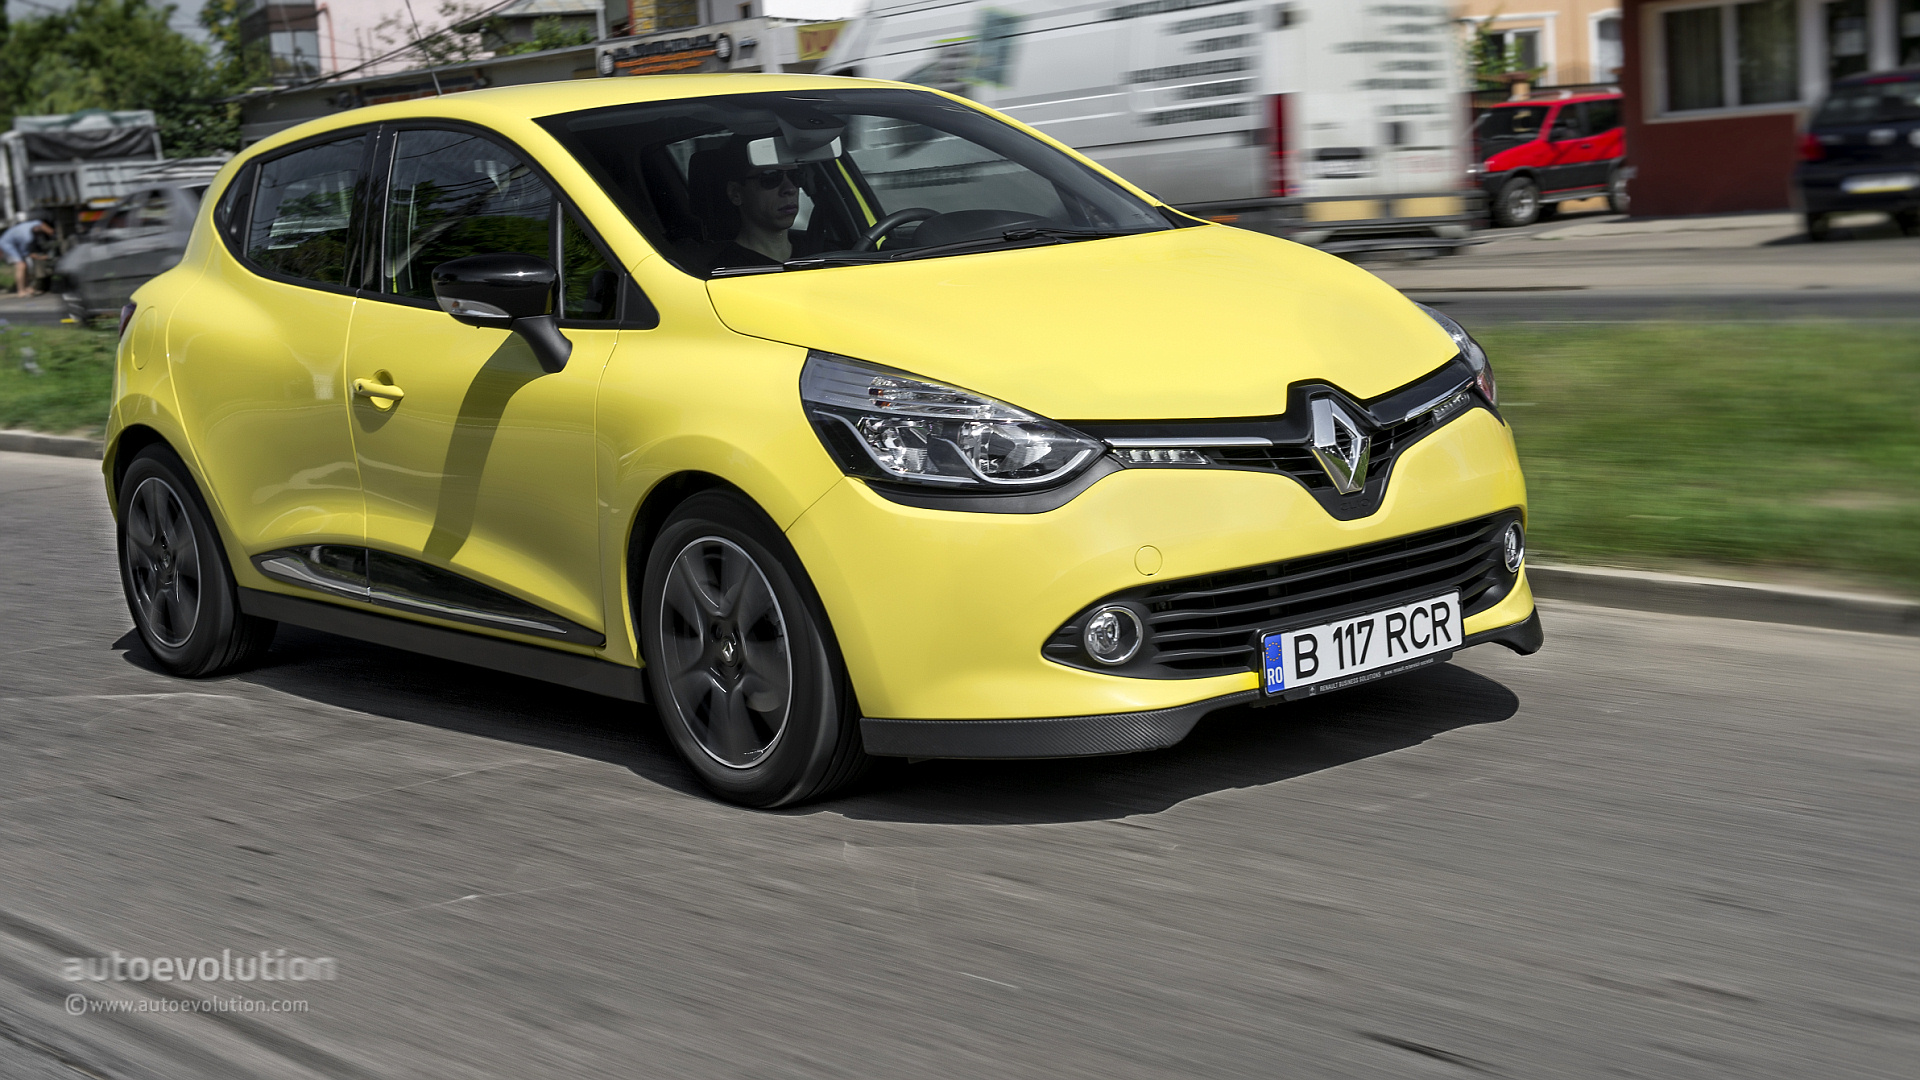 400 000 new renault clio units recalled for braking system problem autoevolution. Black Bedroom Furniture Sets. Home Design Ideas